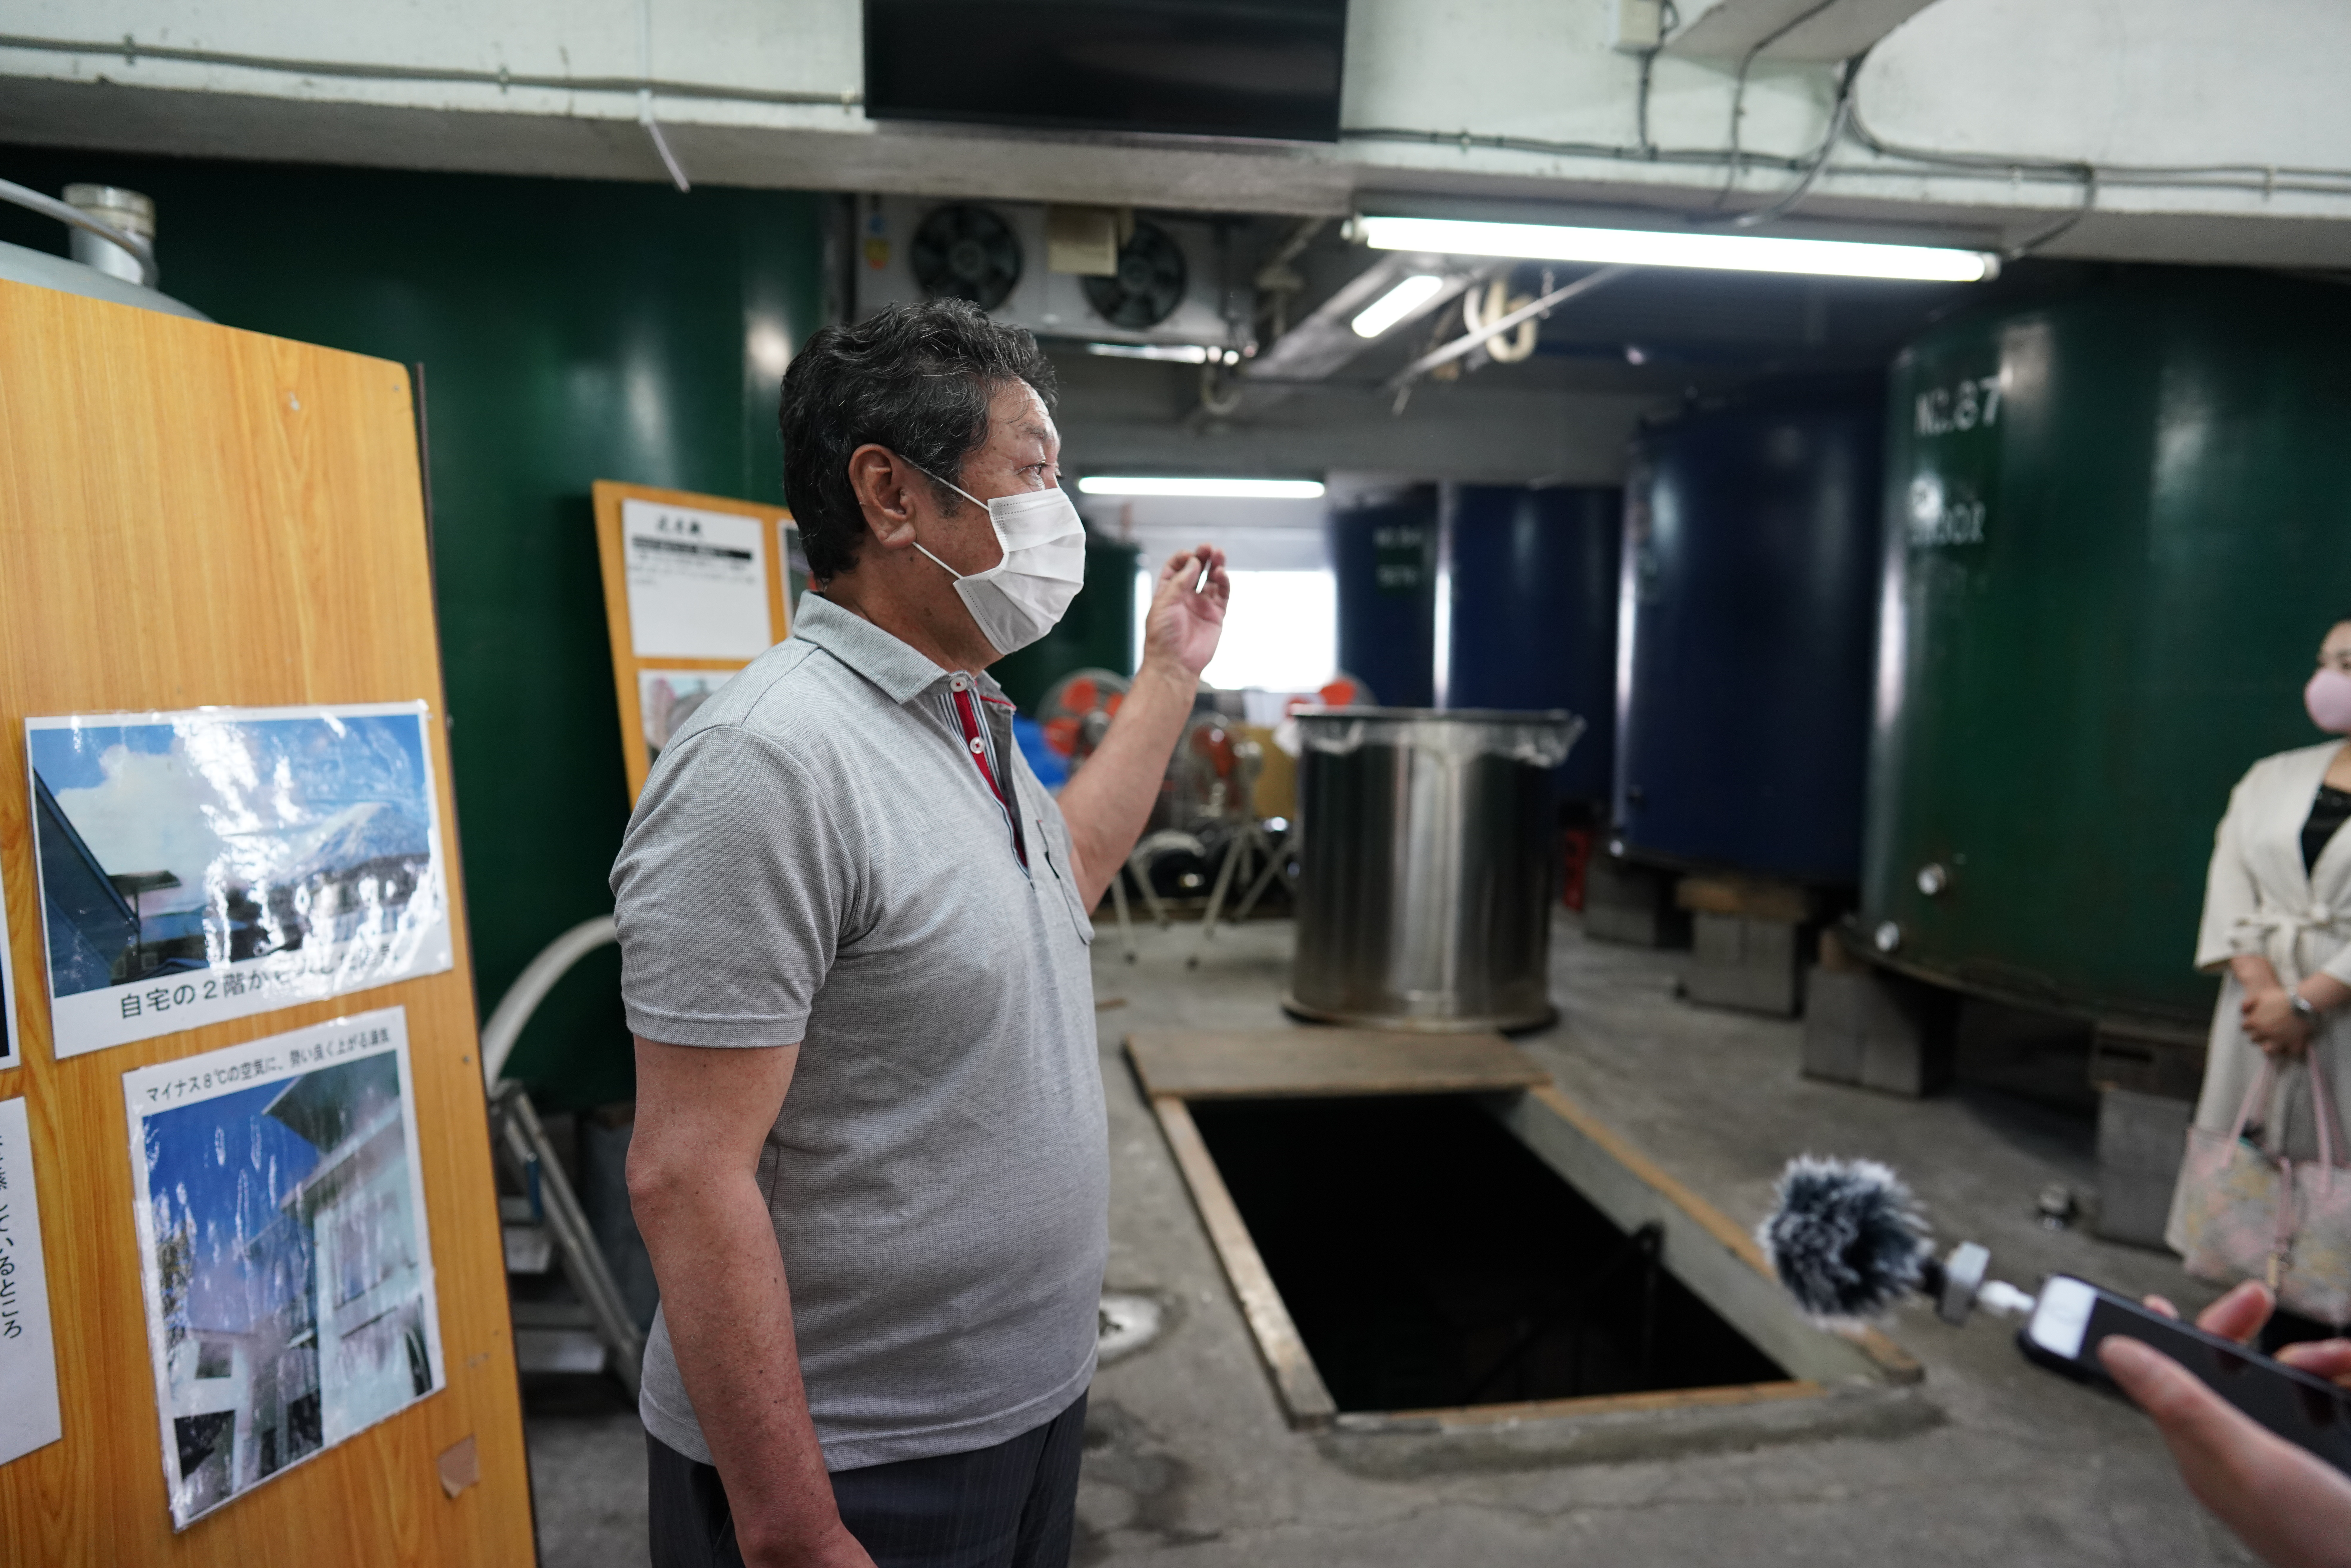 This photo of the sake brewery's owner, Mr. Ide, is a testament to Japan's strict adherence to COVID-19 protocol.